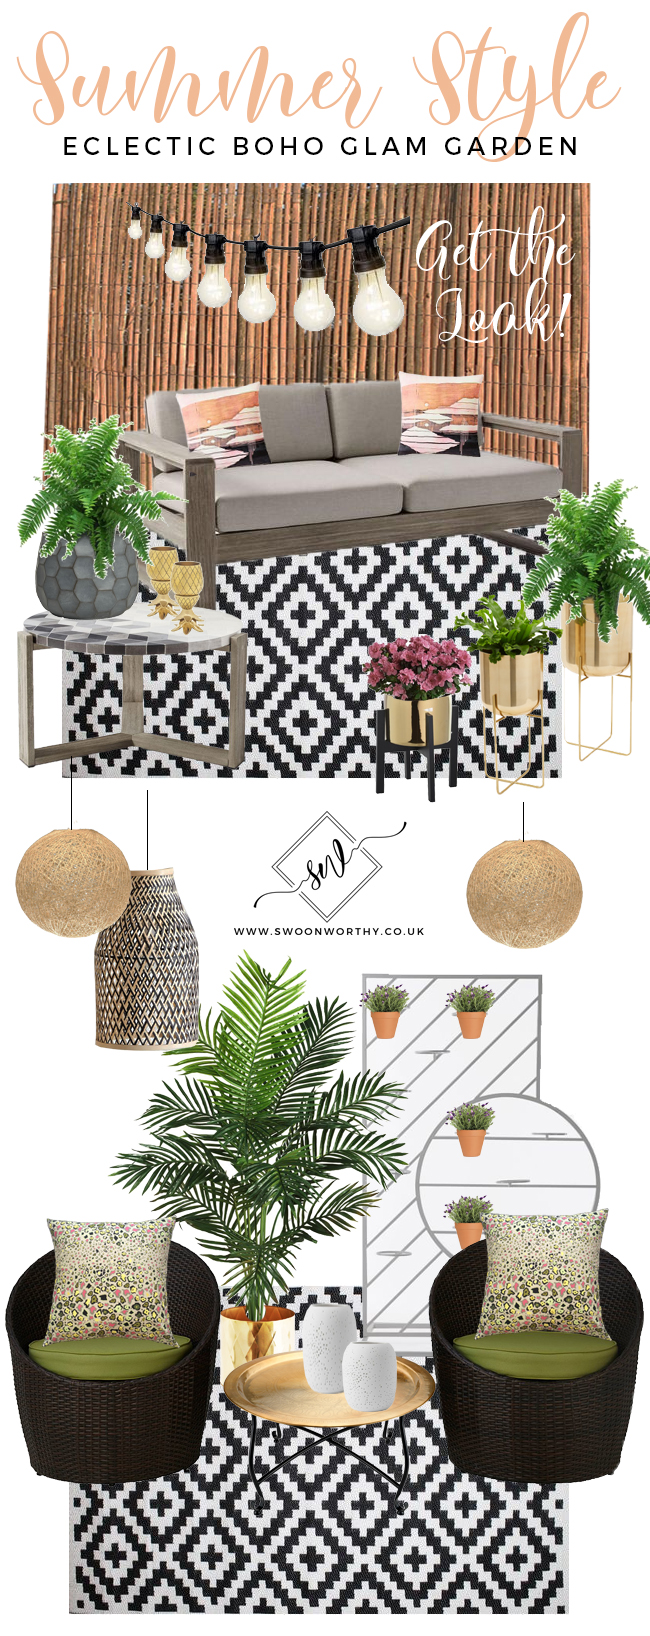 Swoon Worthy Garden Patio Get the Look - Eclectic Boho Glam